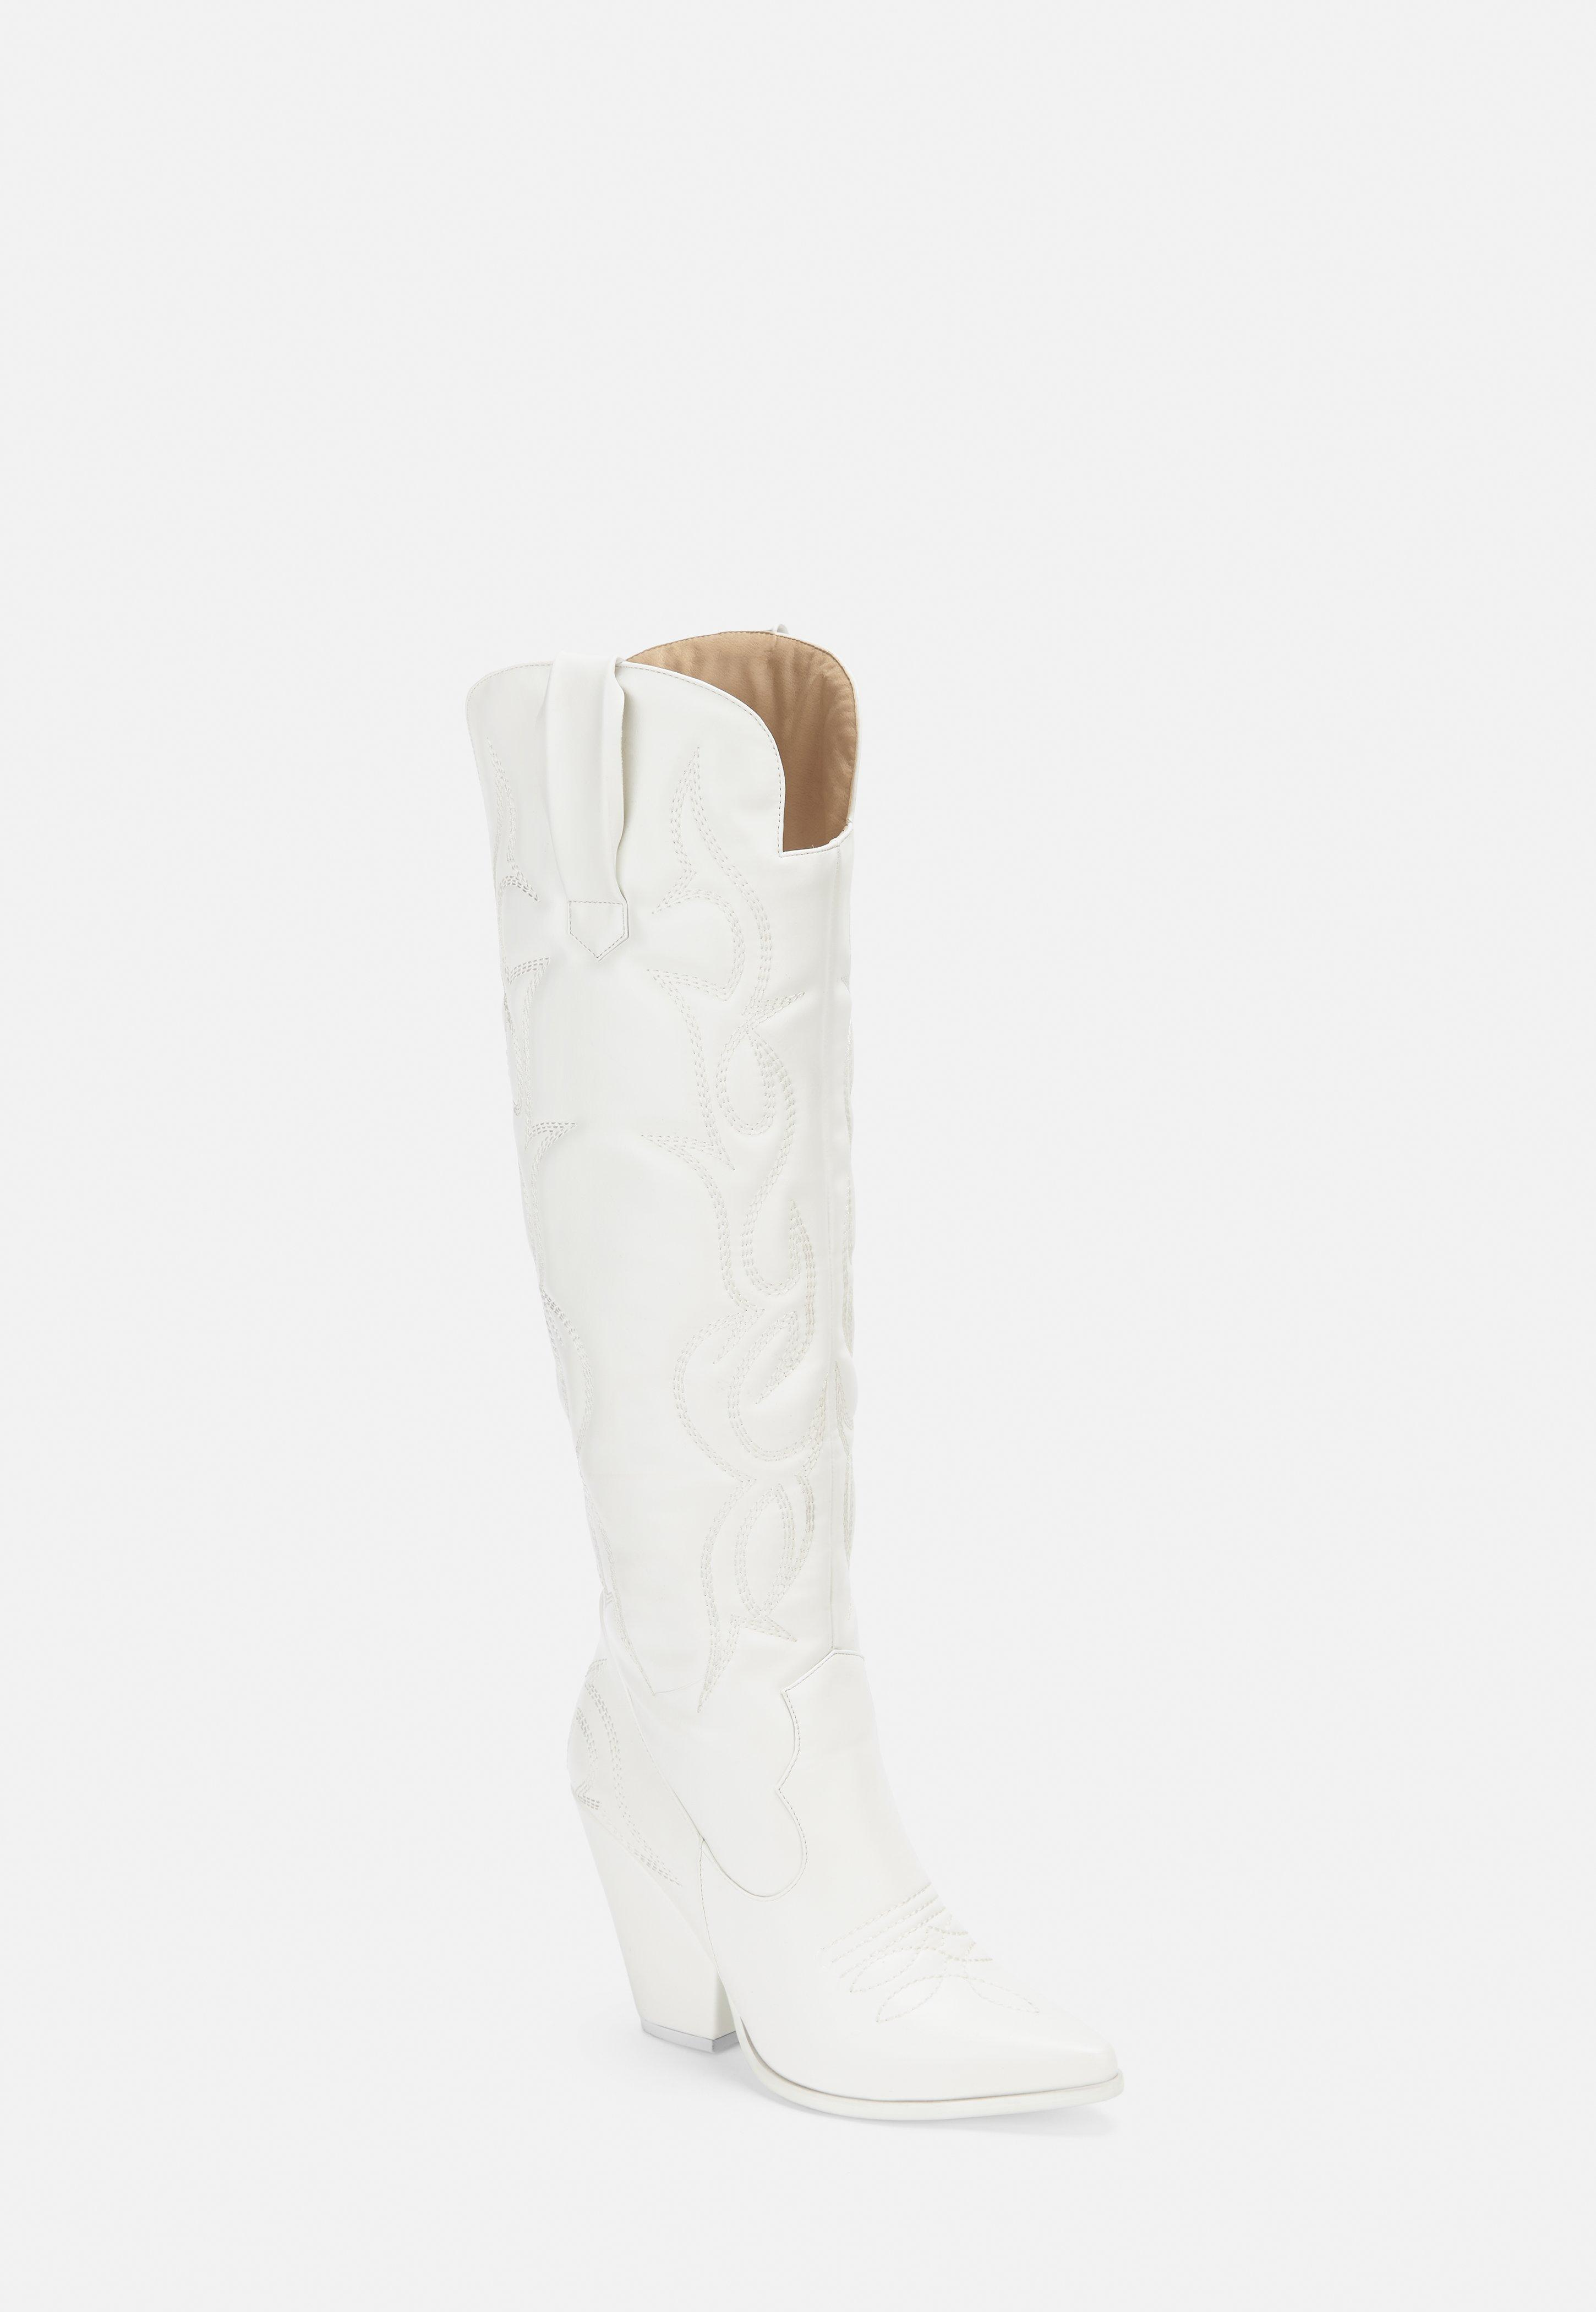 6c8cad532bf White Padded Western Knee High Boots